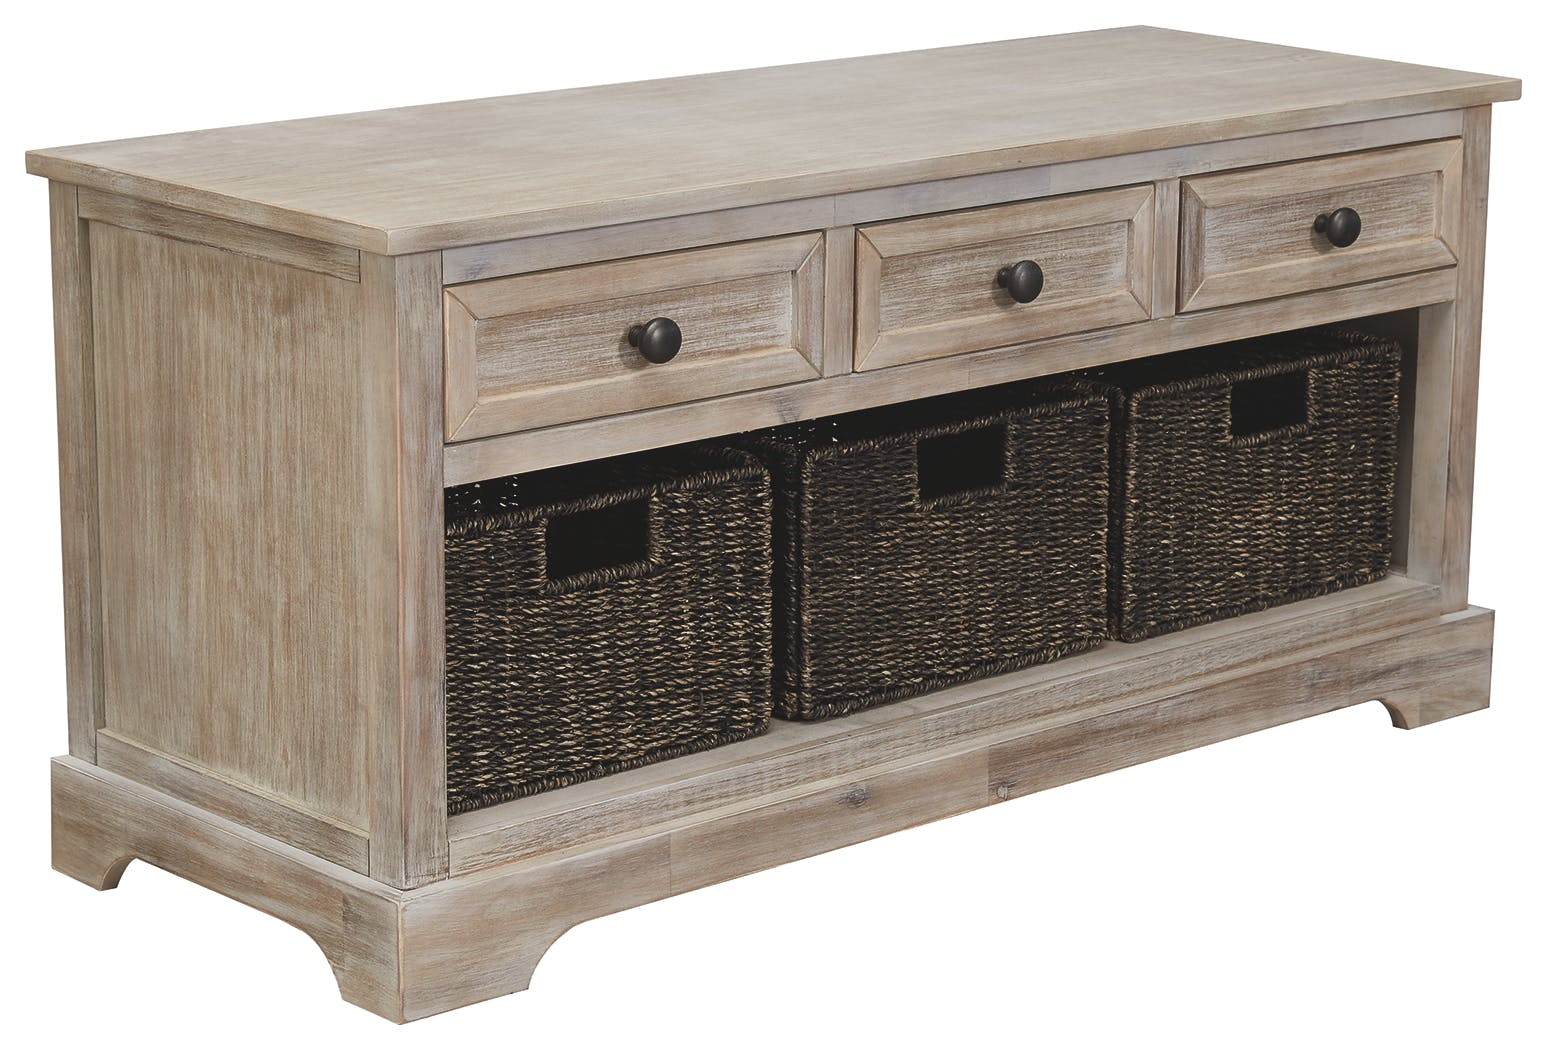 Signature Design By Ashley Living Room Oslember Storage Bench A3000198 Furniture Kingdom